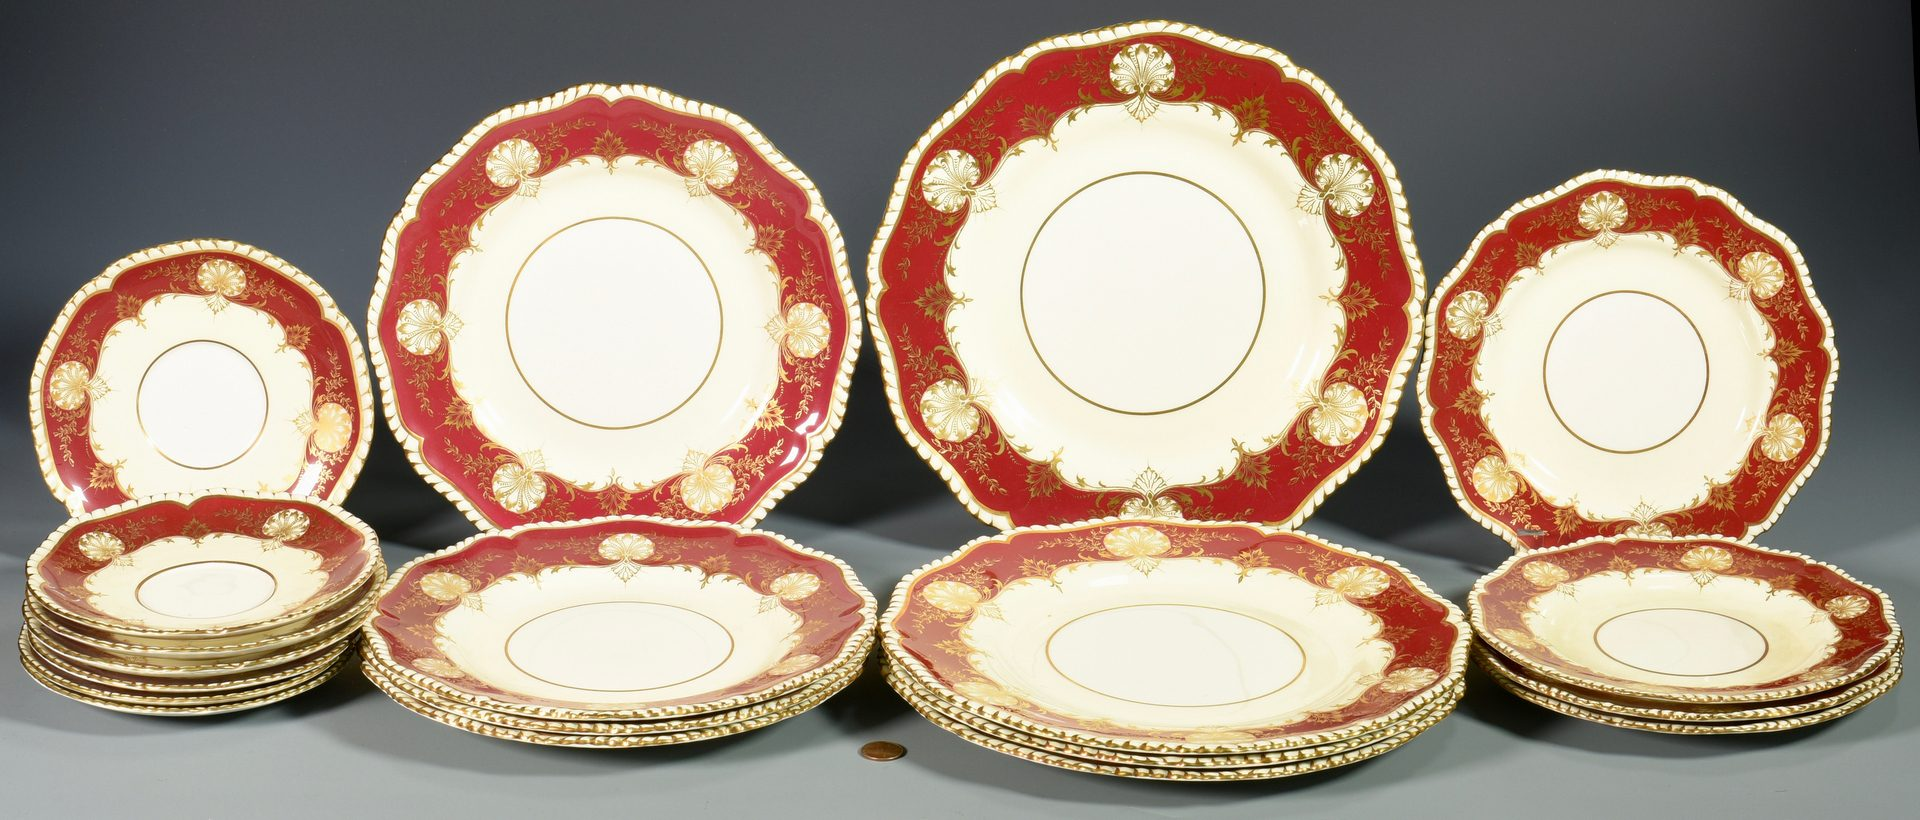 Lot 84: Assorted pcs Red Hatfield Porcelain dinnerware